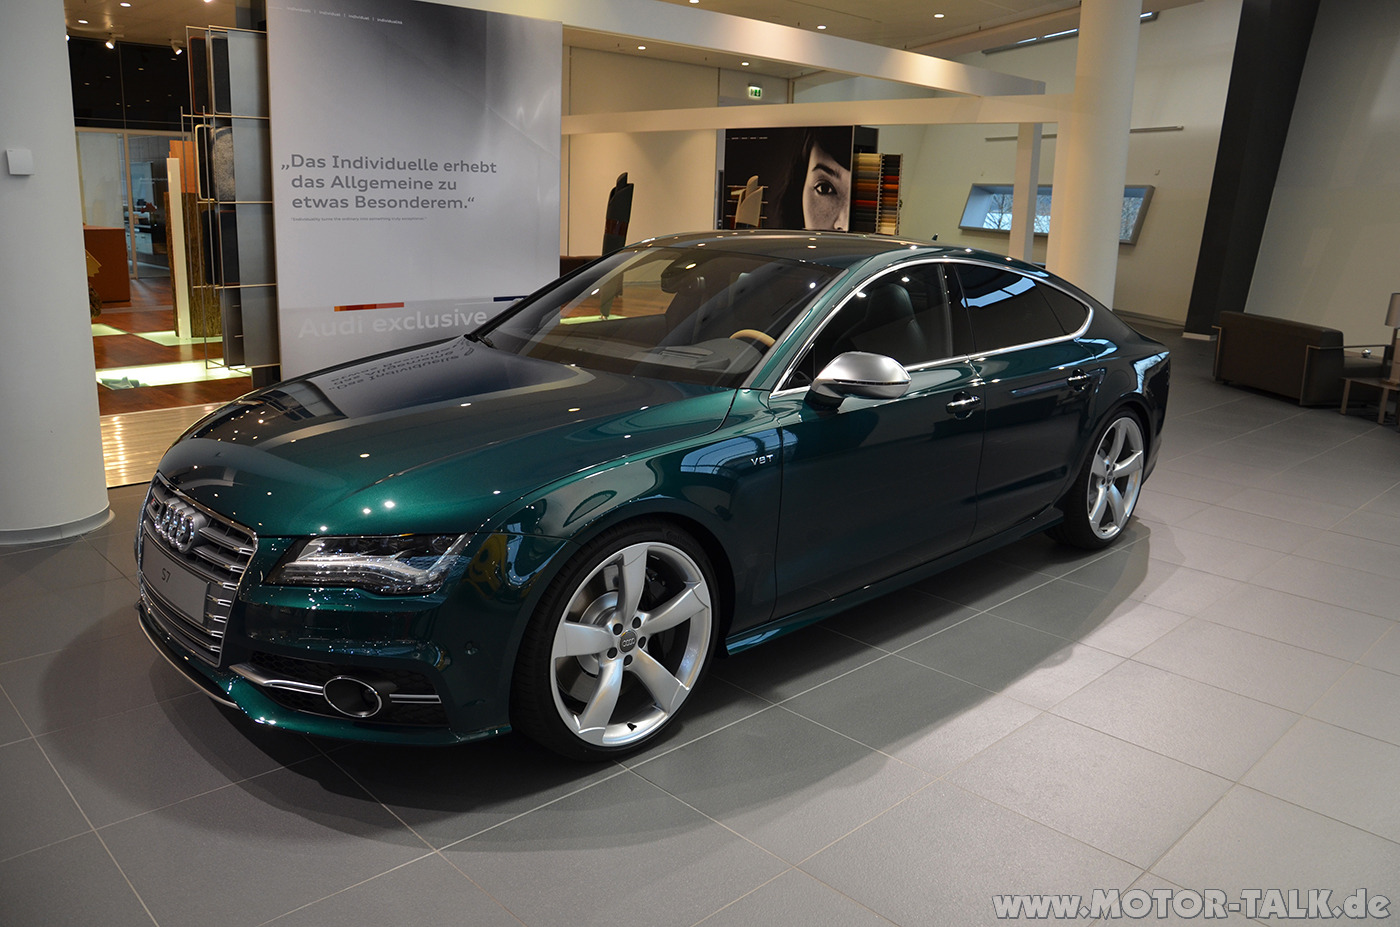 Audi+S7+in+Exclusive+Smaragdgr%C3%BCn+Pe